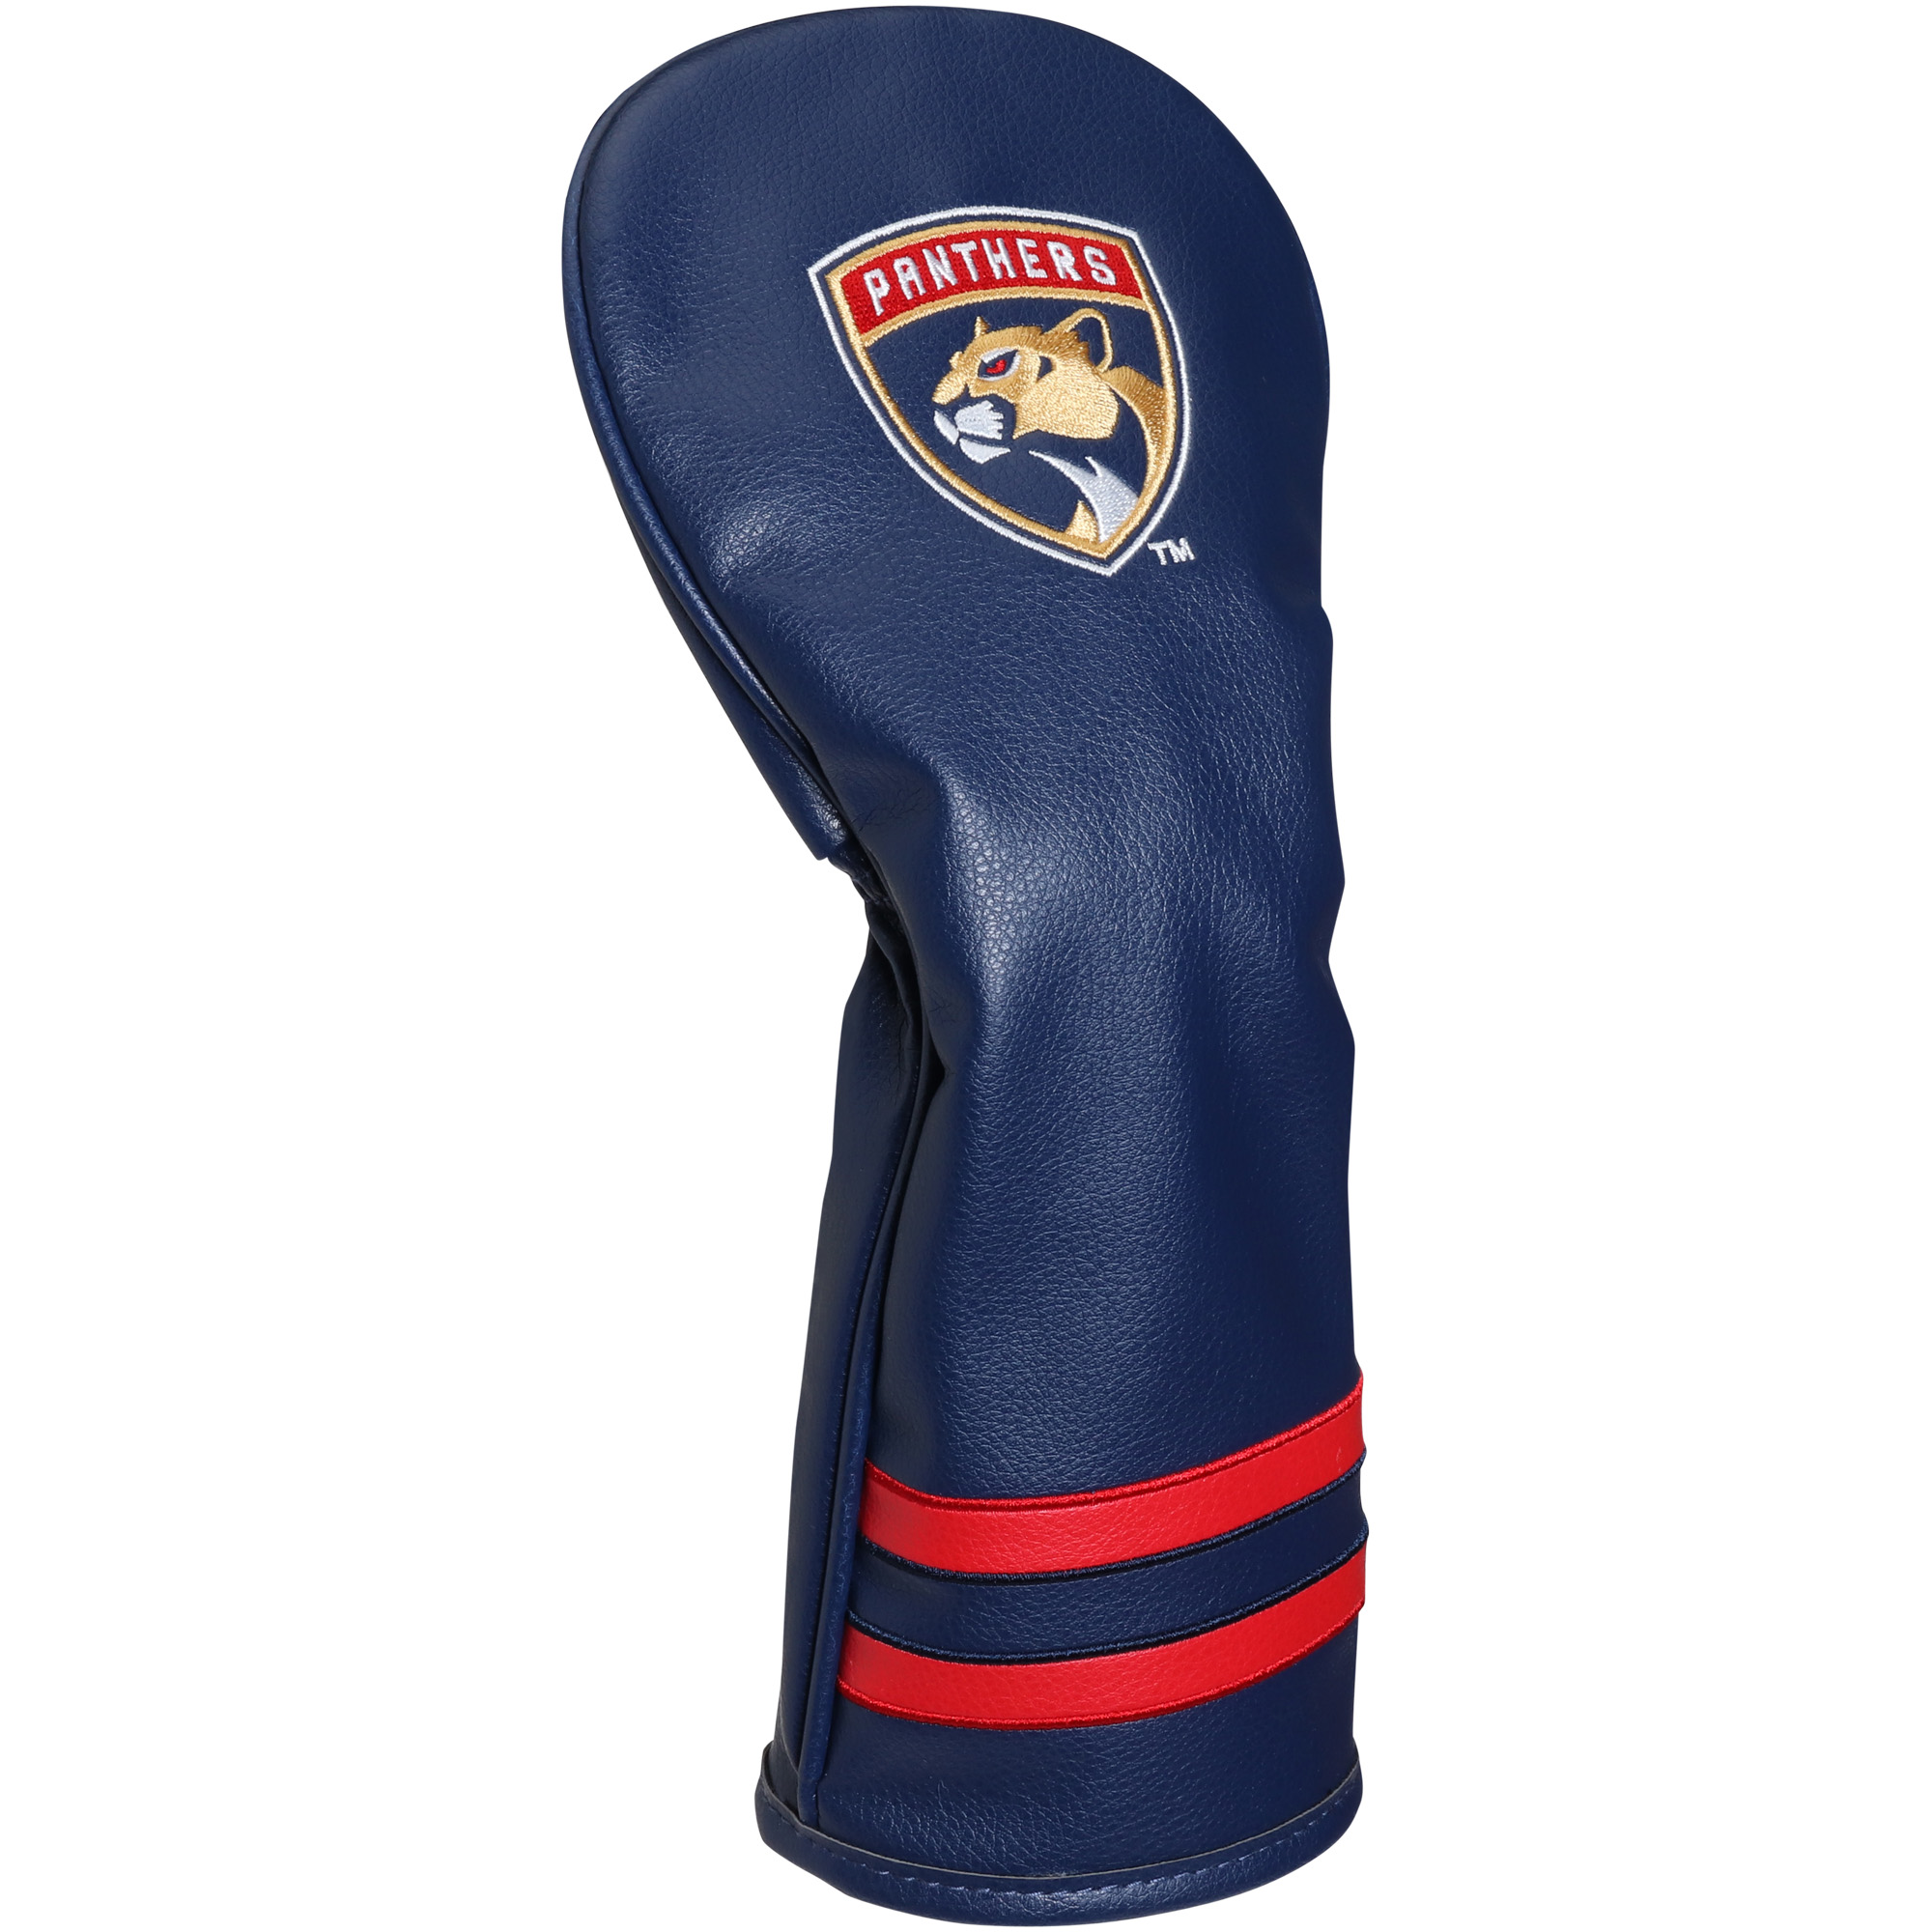 Florida Panthers Vintage Fairway Headcover - No Size